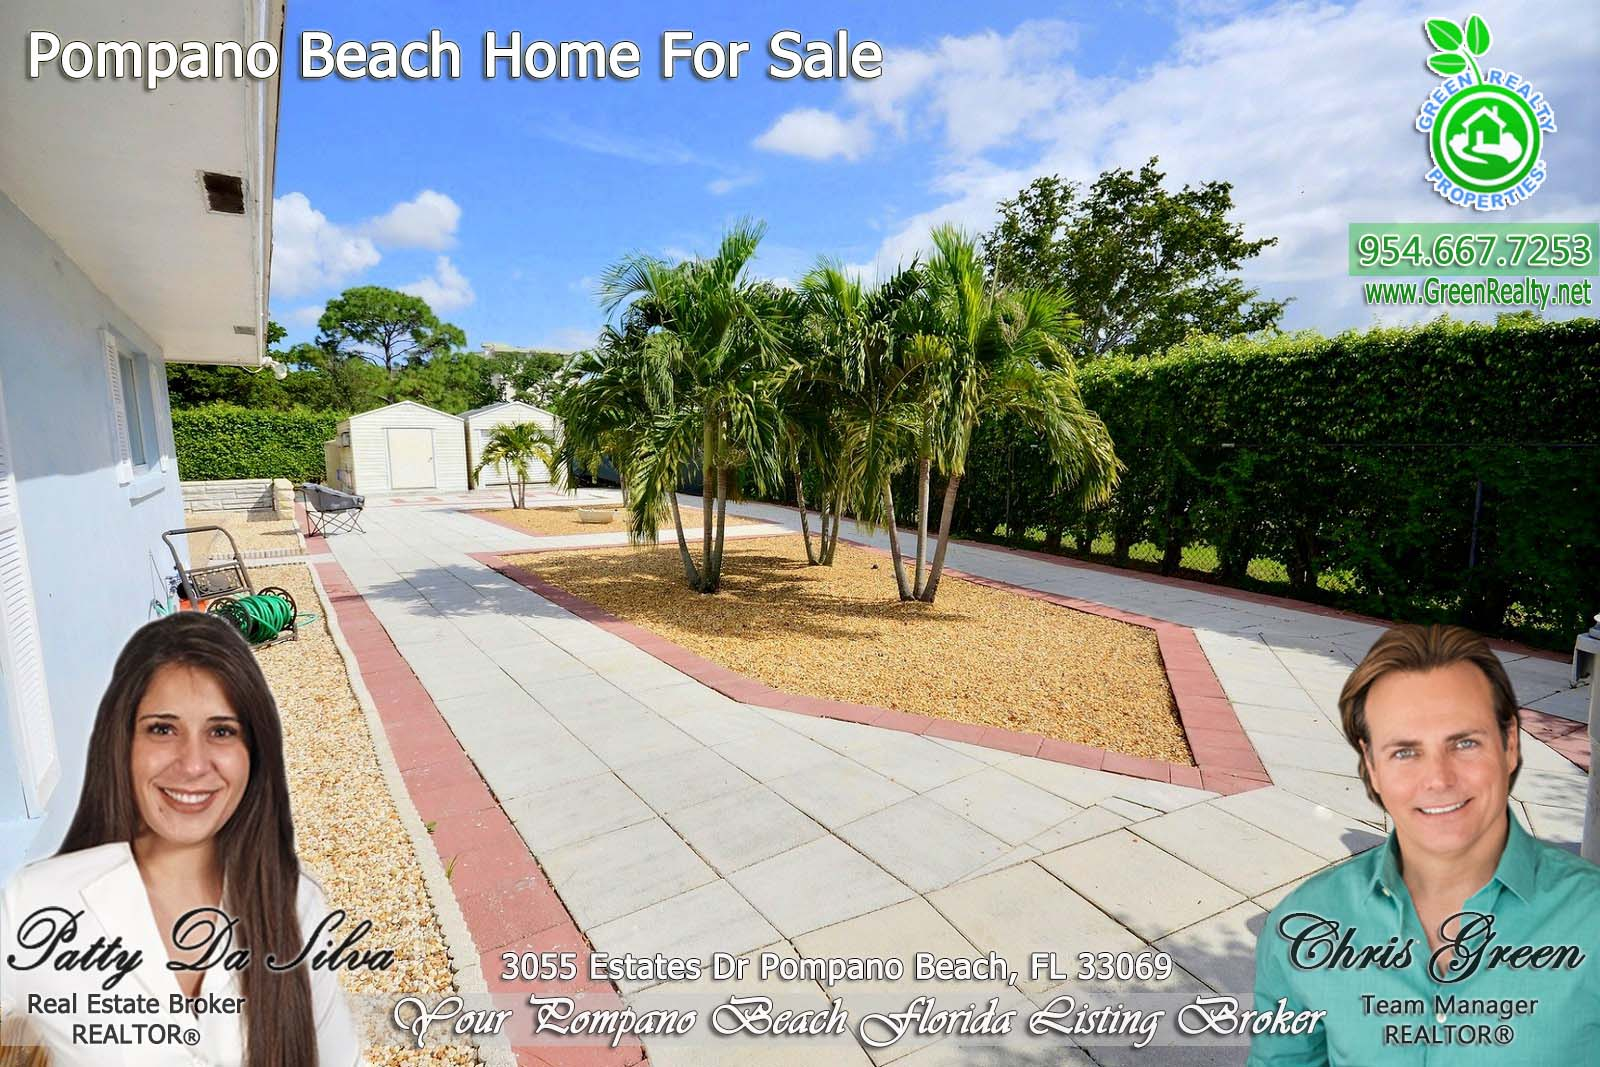 35 Pompano Beach Homes For Sale (2)